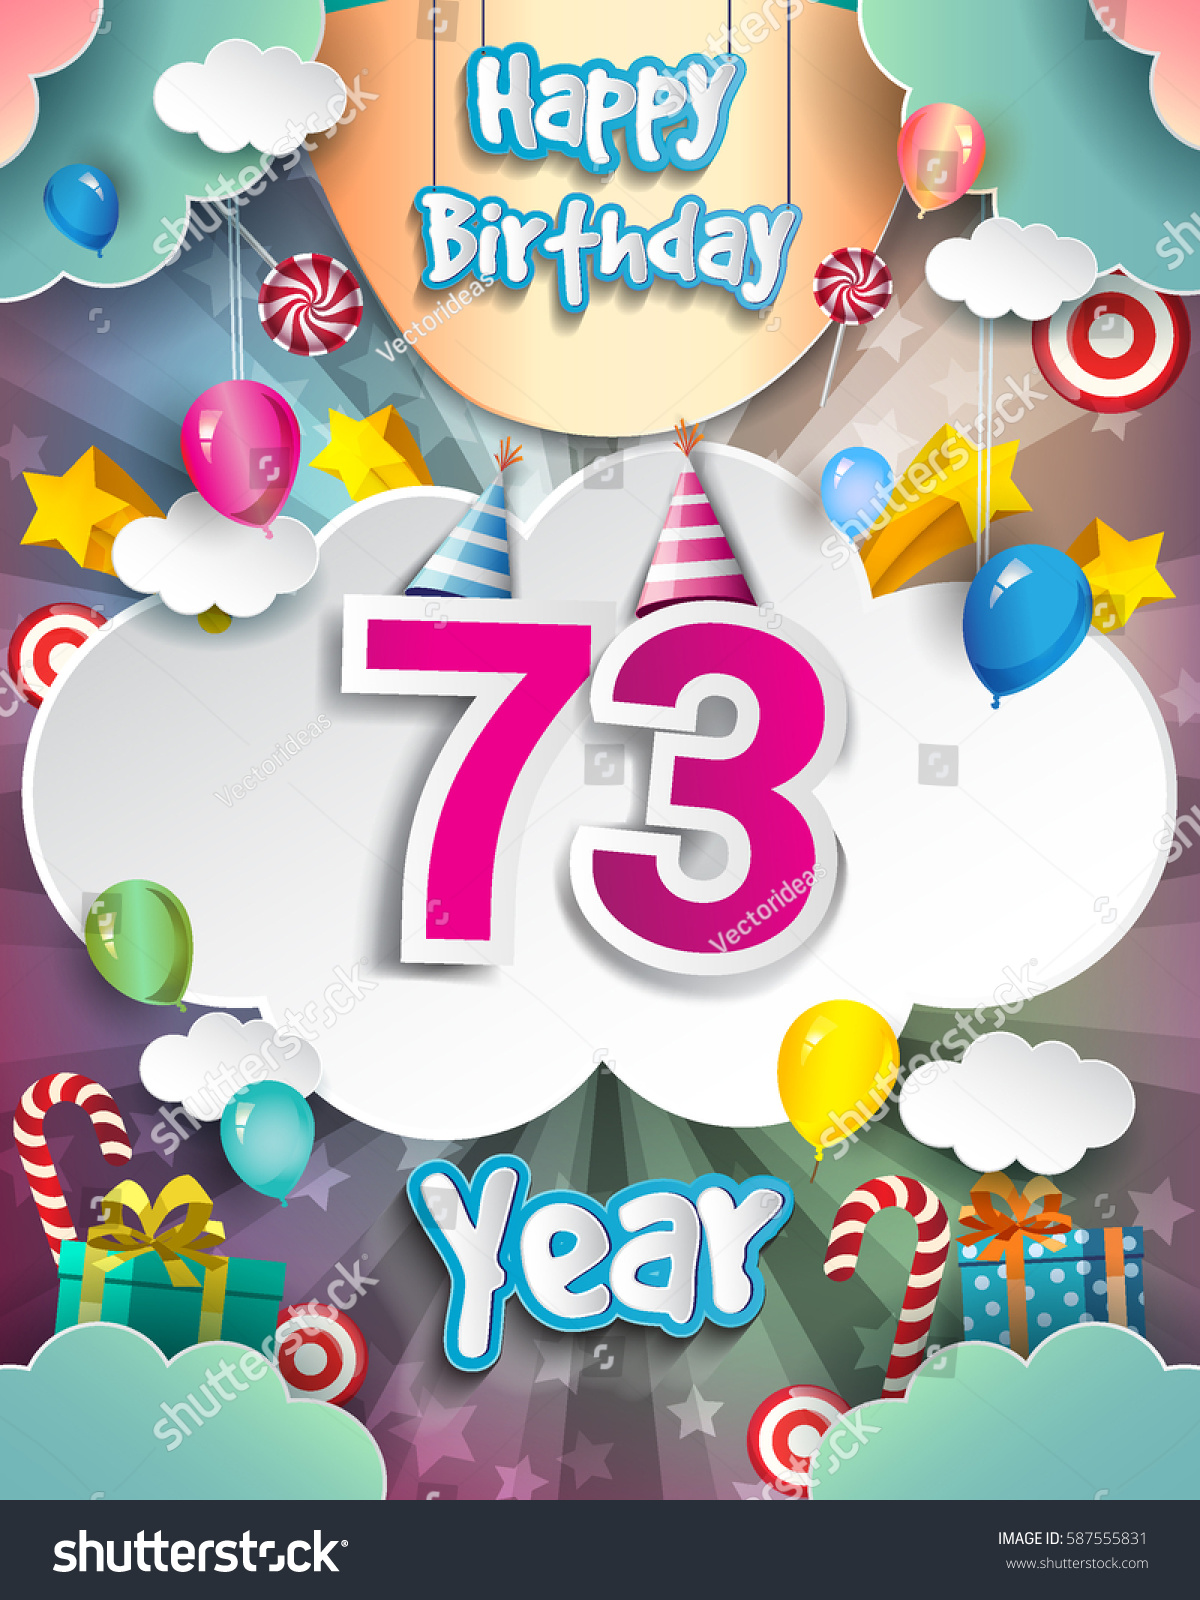 73rd birthday celebration greeting card design stock vector 73rd birthday celebration greeting card design with clouds and balloons vector elements for the kristyandbryce Images